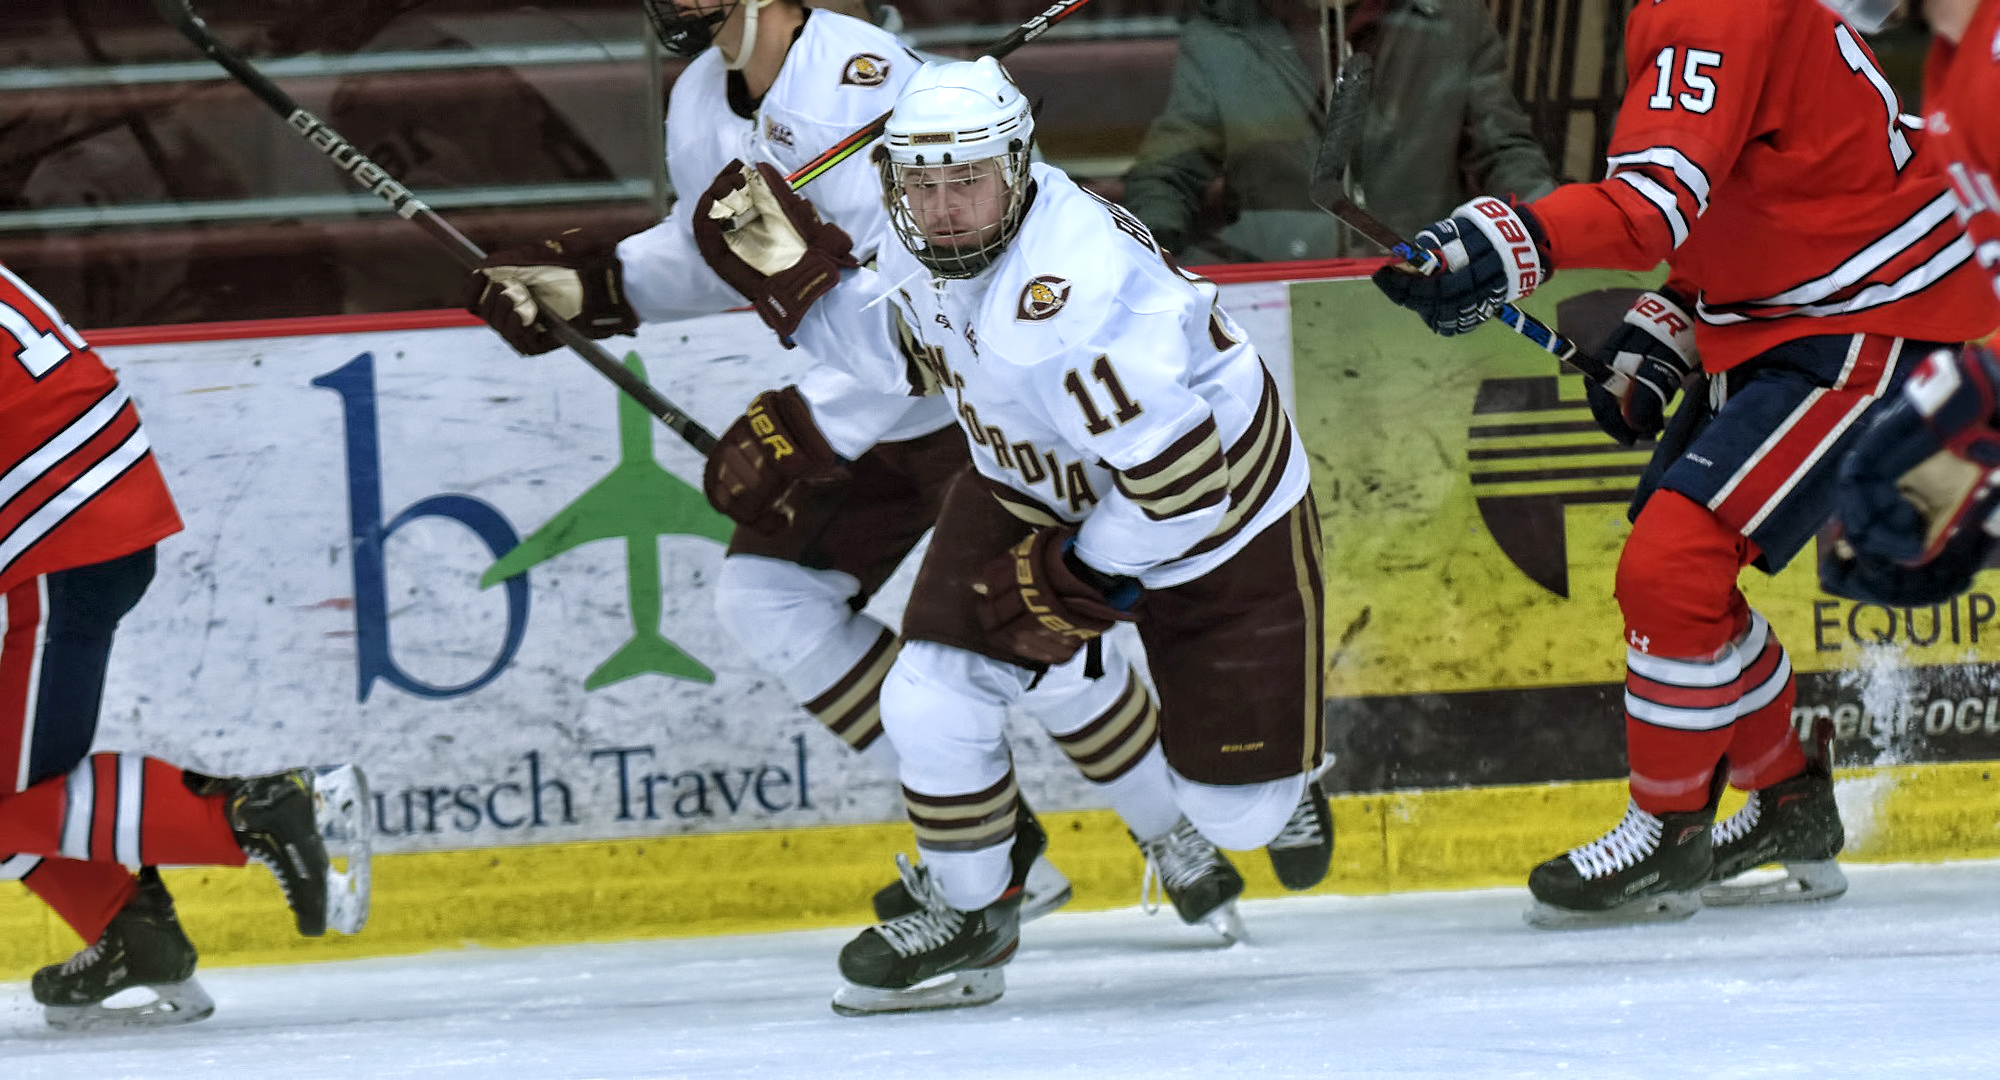 Jacen Bracko had a team-high five shots on goal in the Cobbers' series finale with St. Mary's.